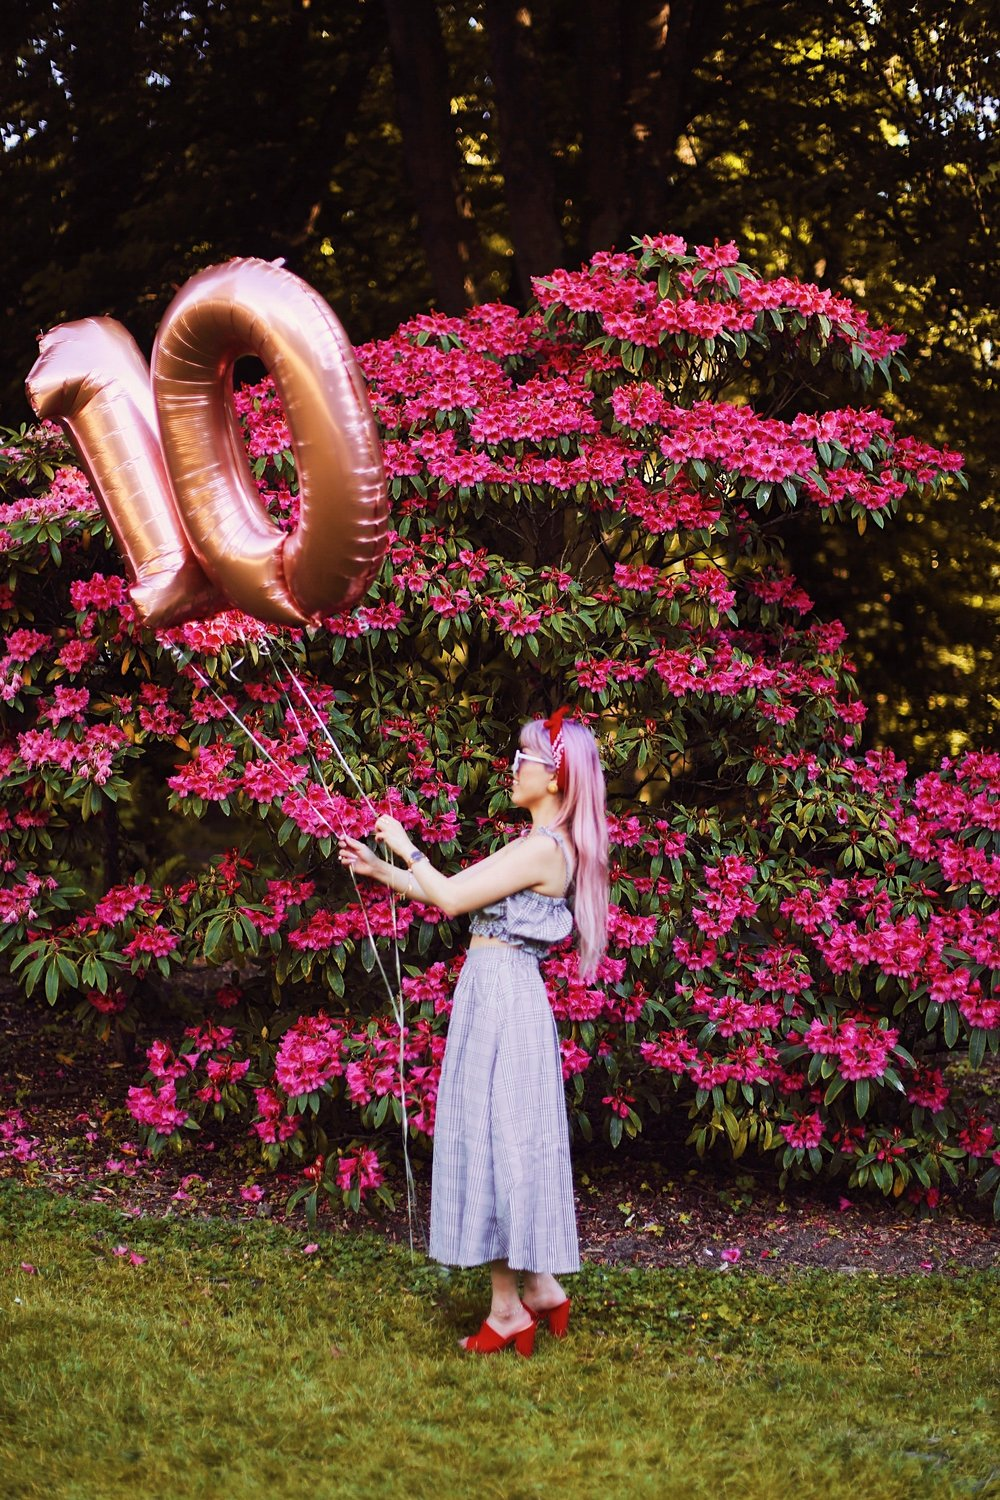 Aika's Love Closet-Seattle Style Life Style Blogger-Japanese-10 Year Anniversary-living in America-what I've learned from Living Abroad-life lessons-pink hair-zero uv heart sunglasses-rose gold balloons-smile 6